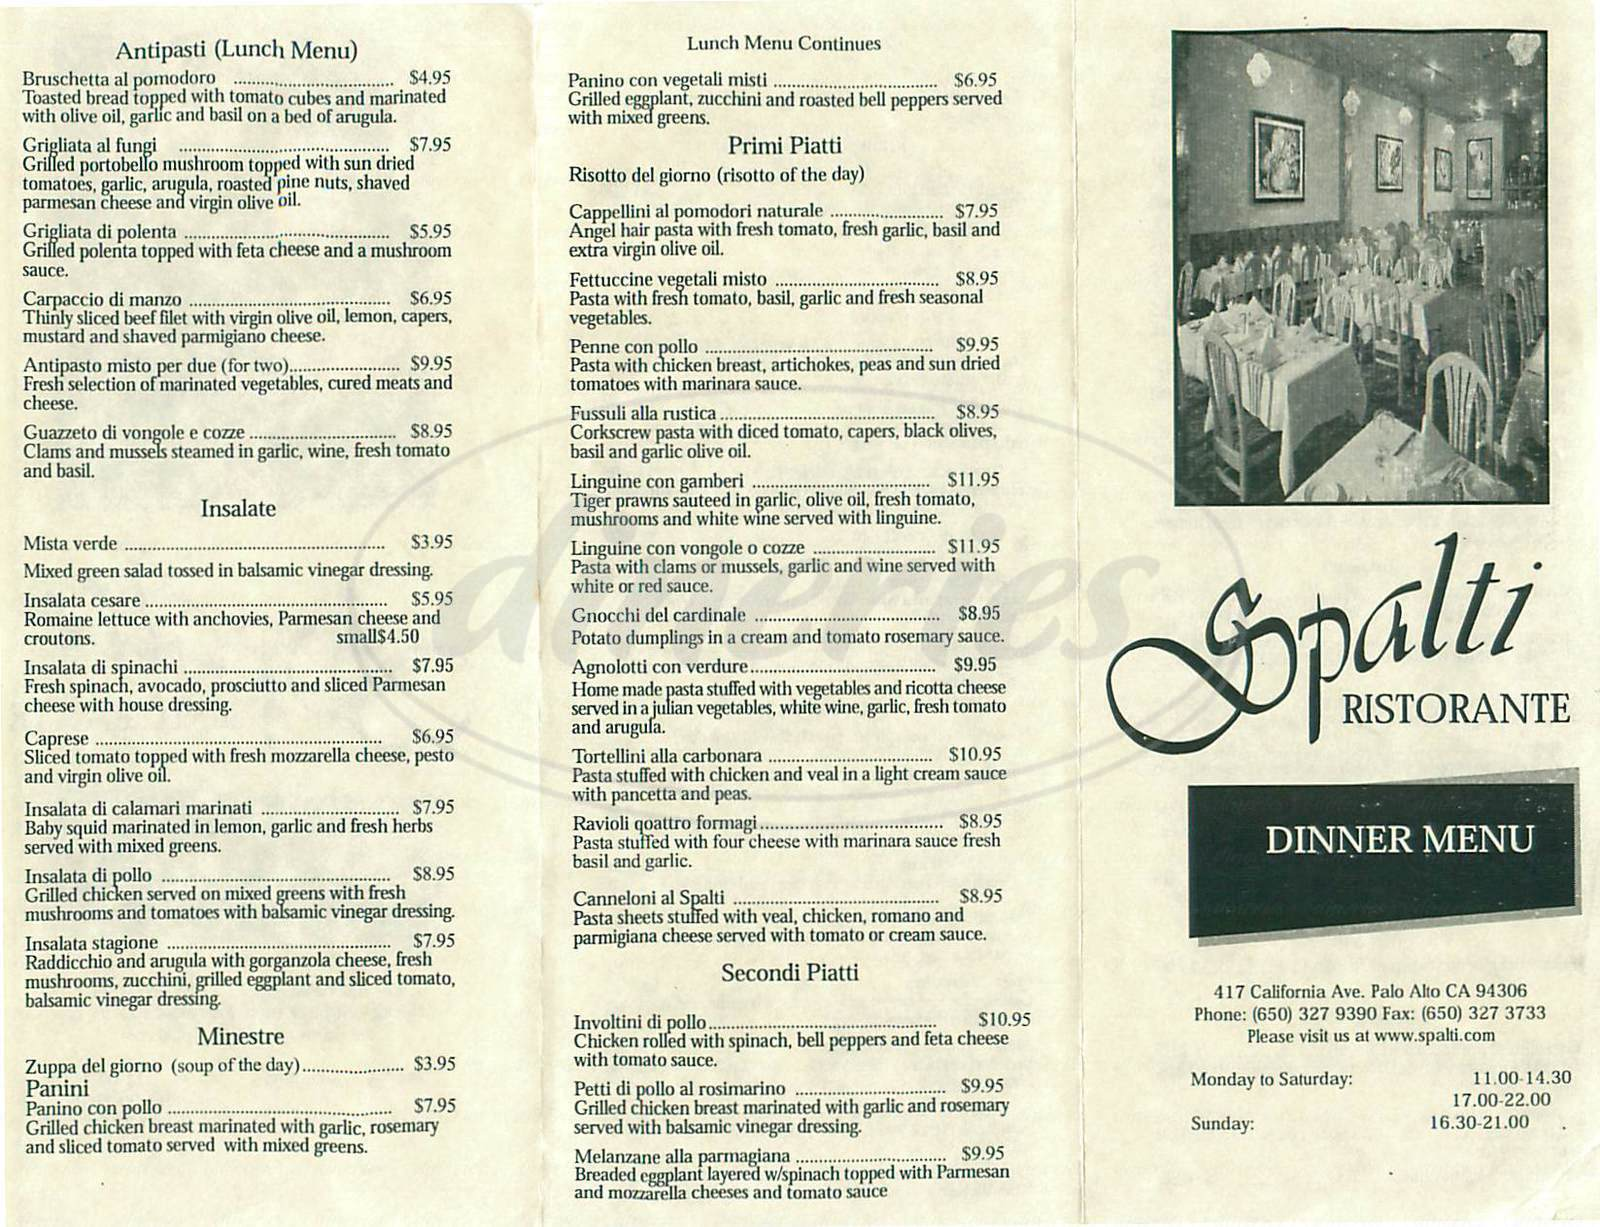 menu for Spalti Ristorante